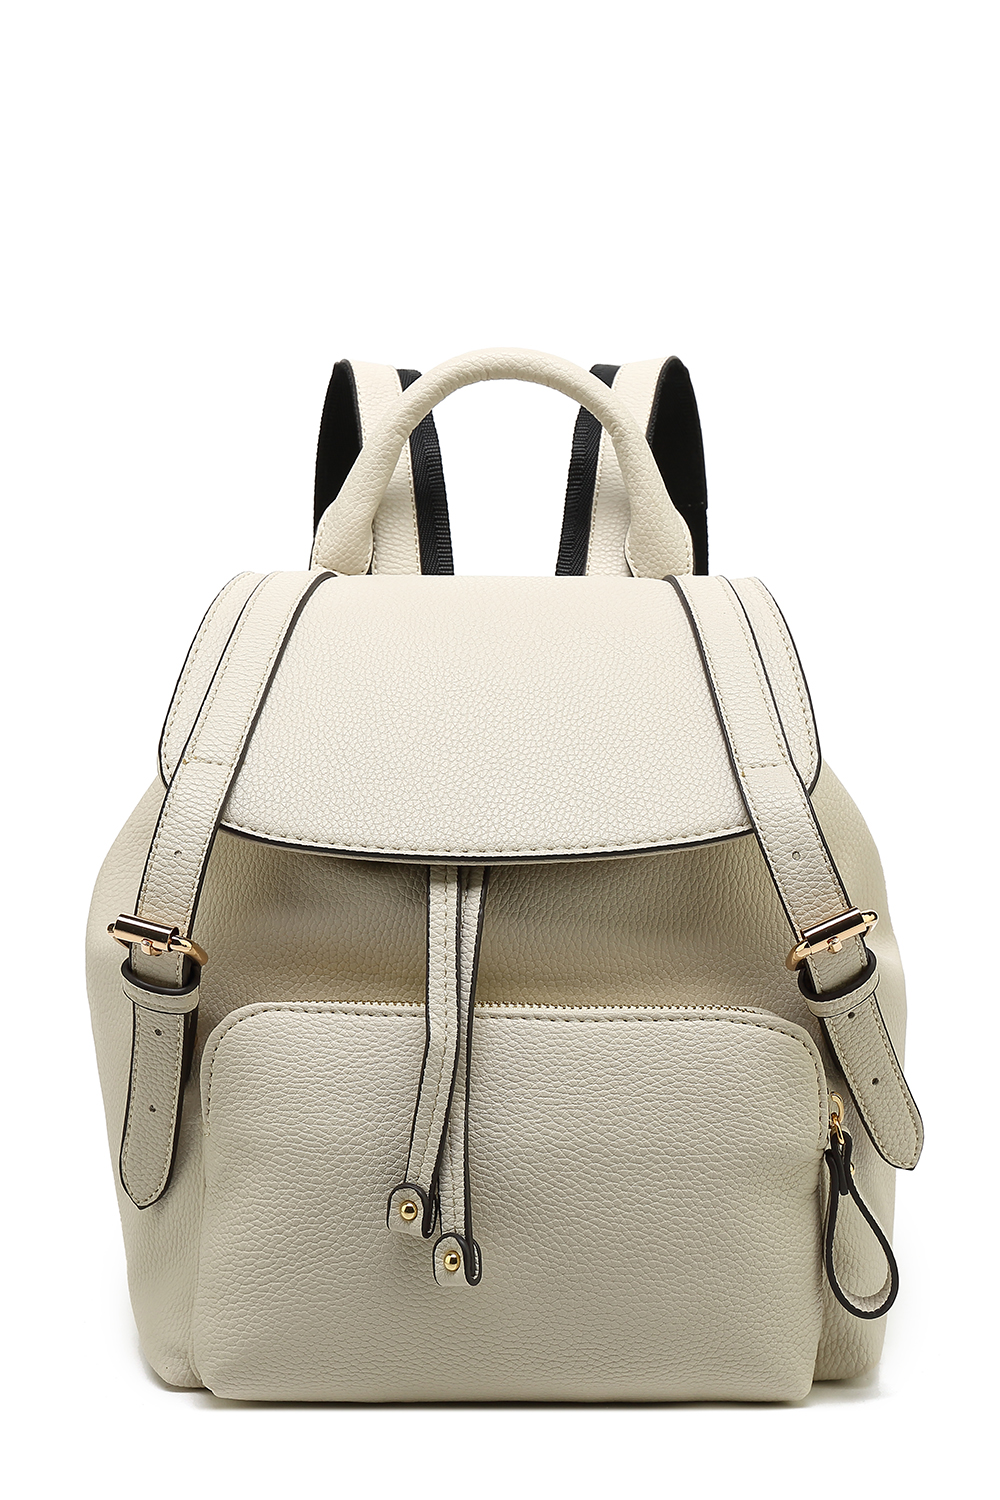 MKF Collection Brandy Backpack by Mia K. Farrow